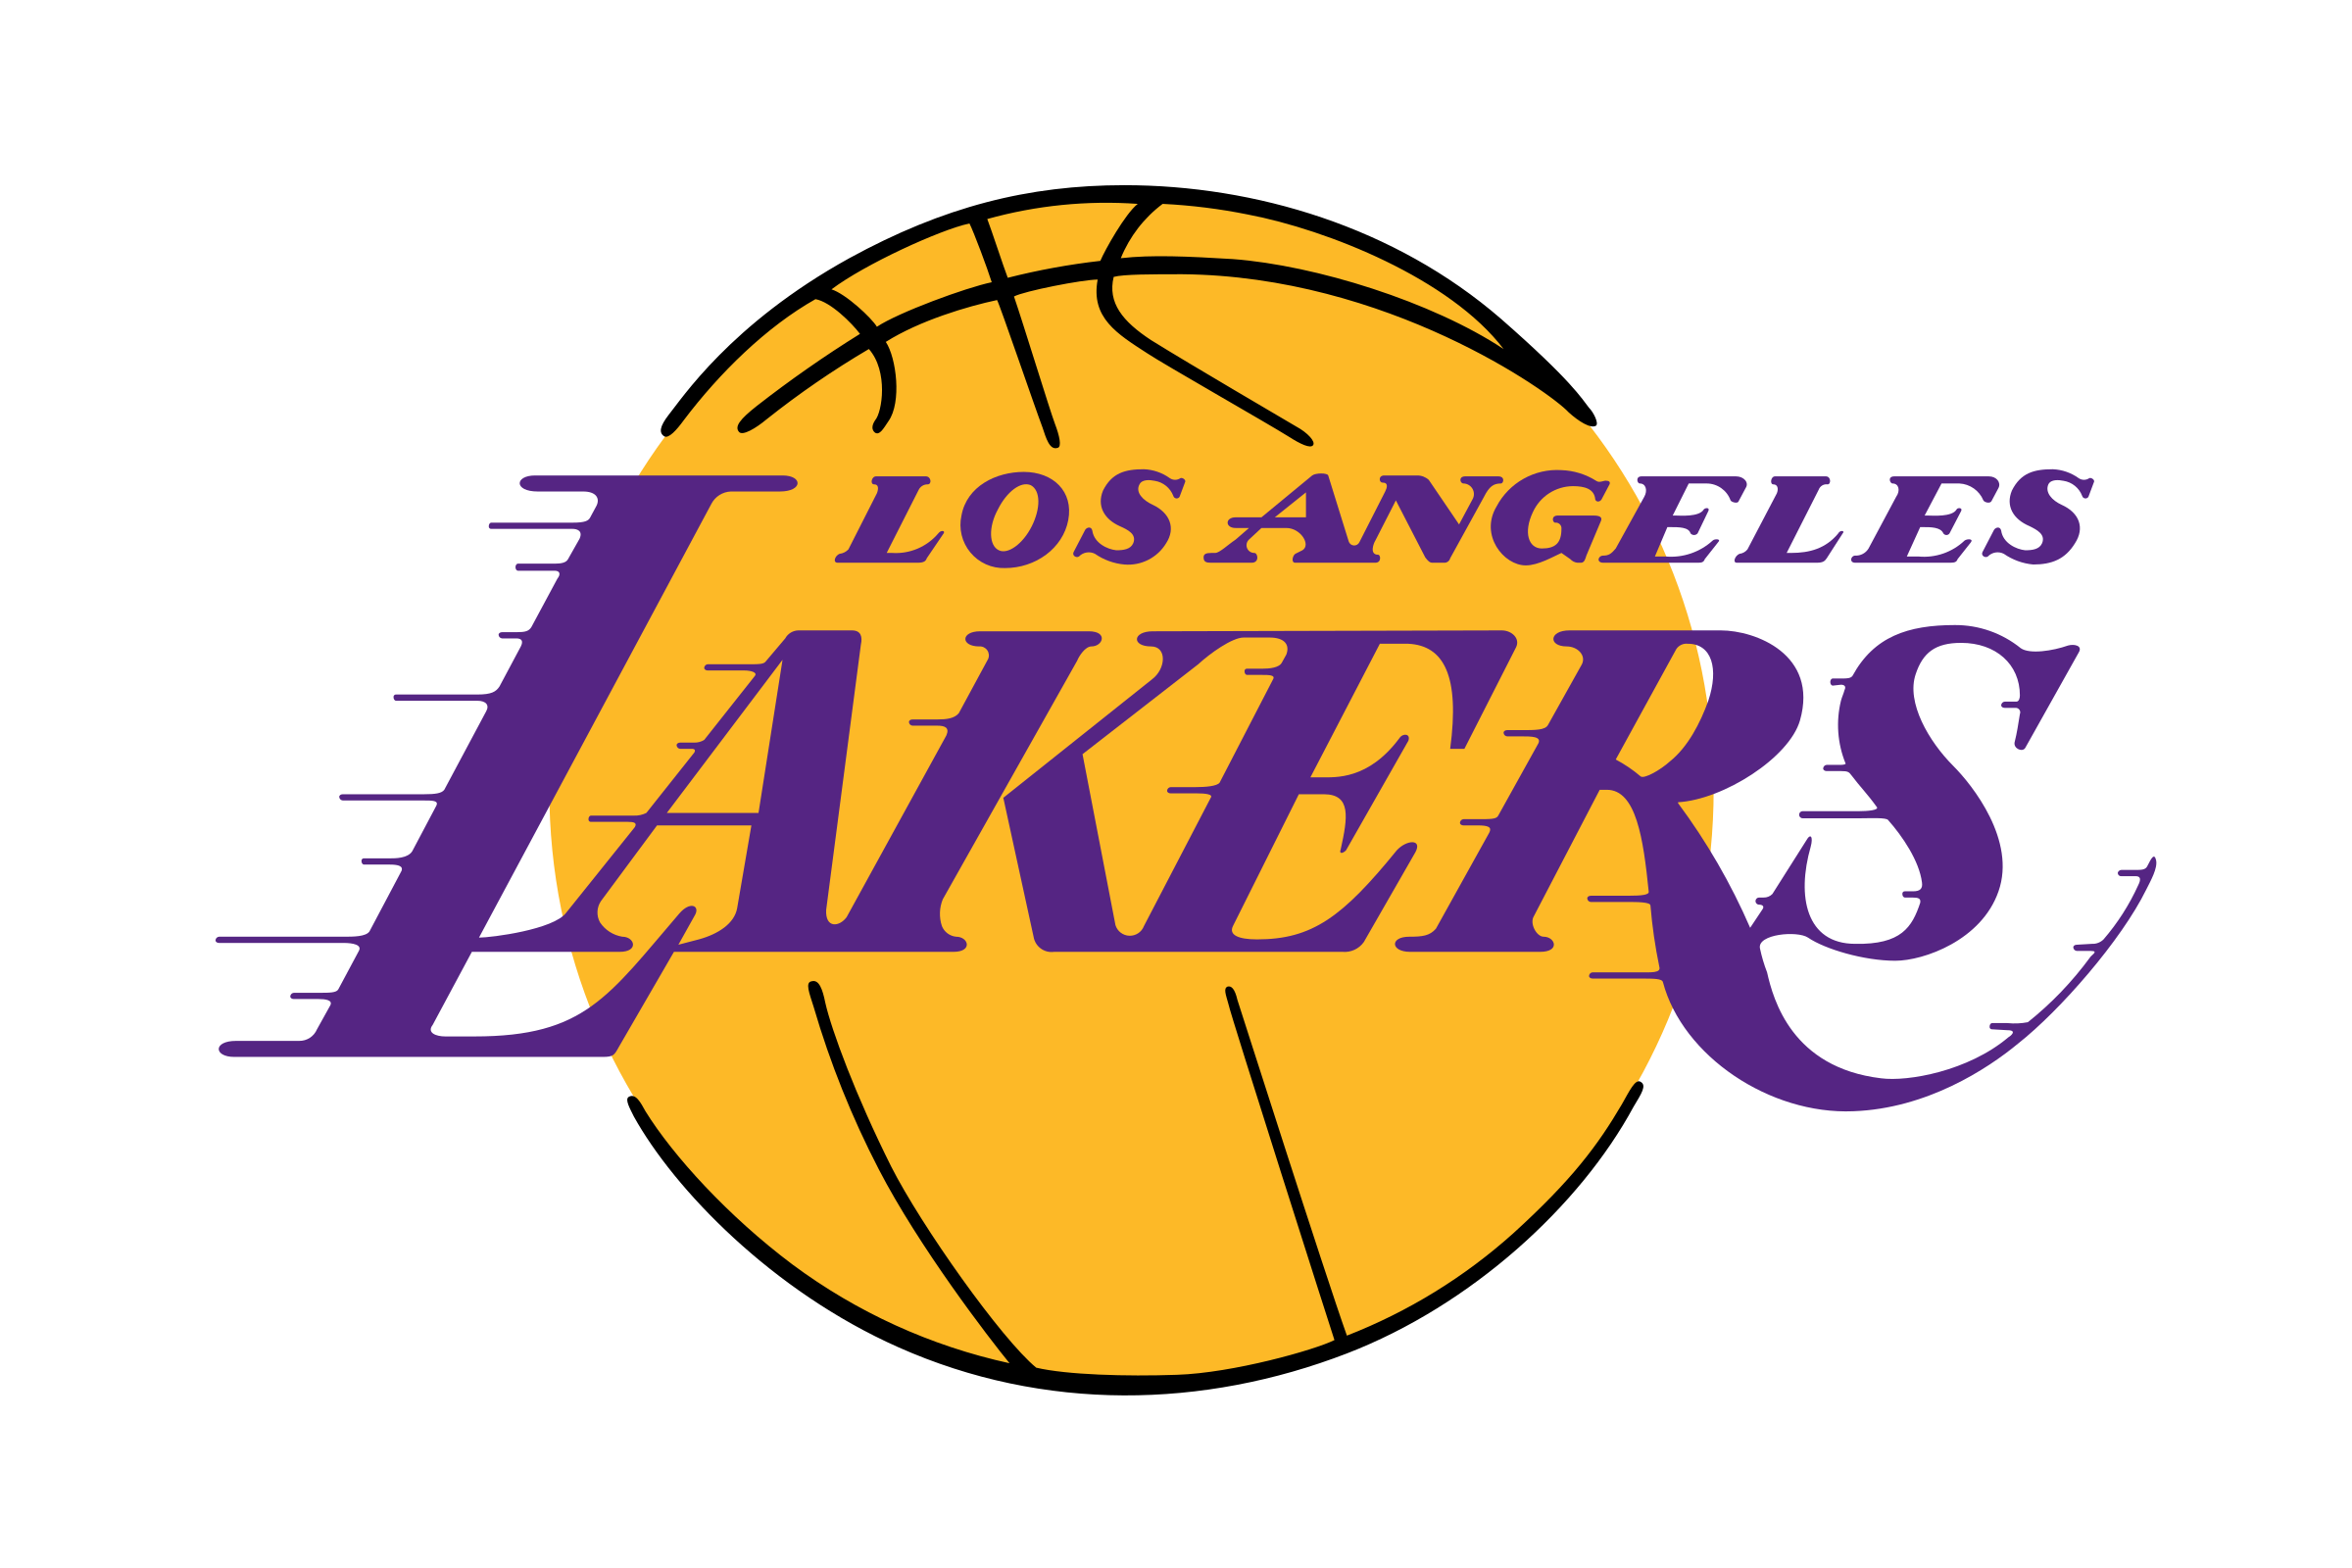 Dodgers svg small. Los angeles lakers logo